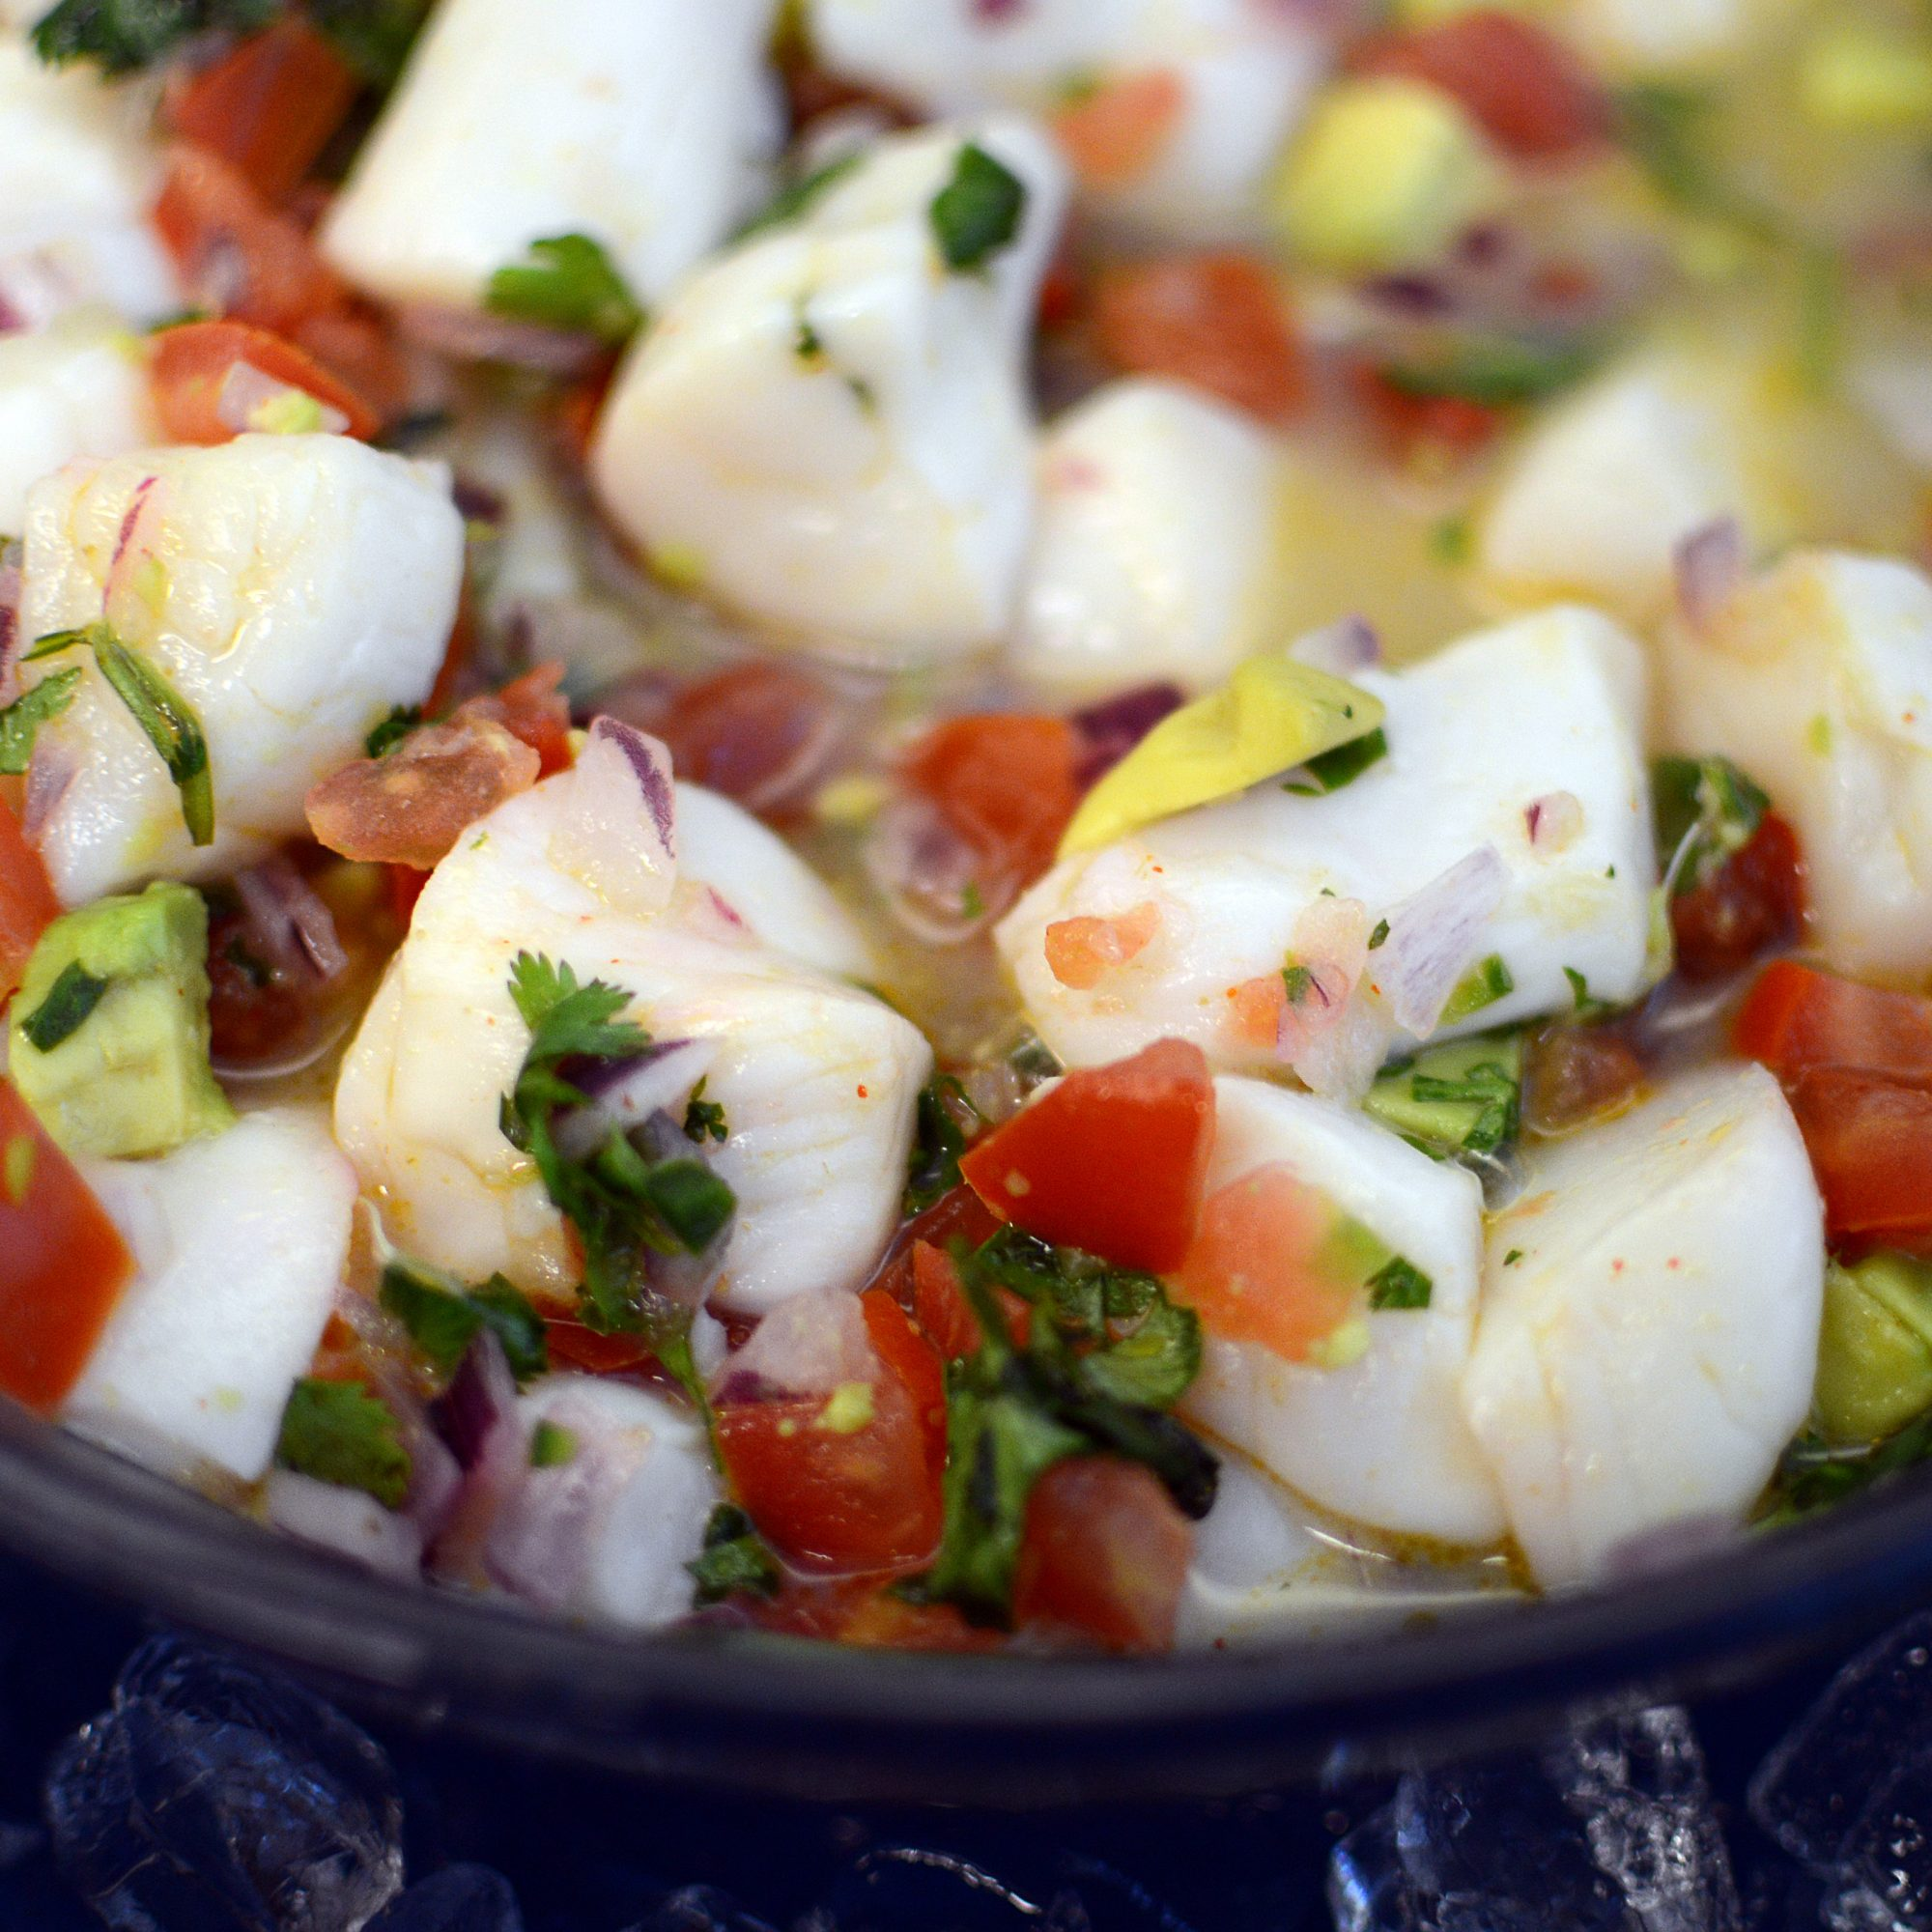 Woman Facing Jail Time for Selling Ceviche on Facebook